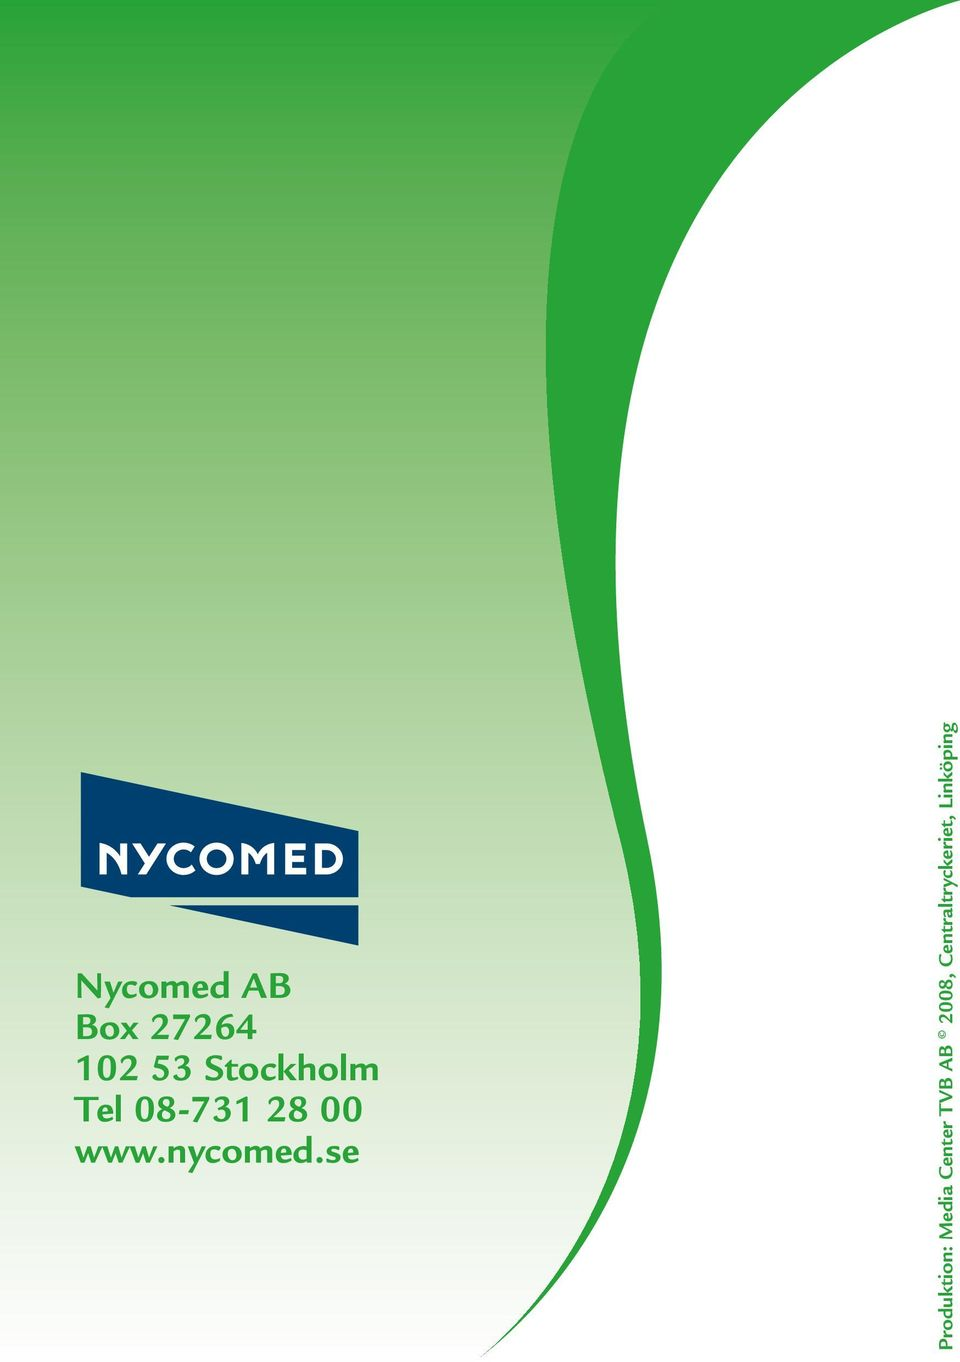 nycomed.